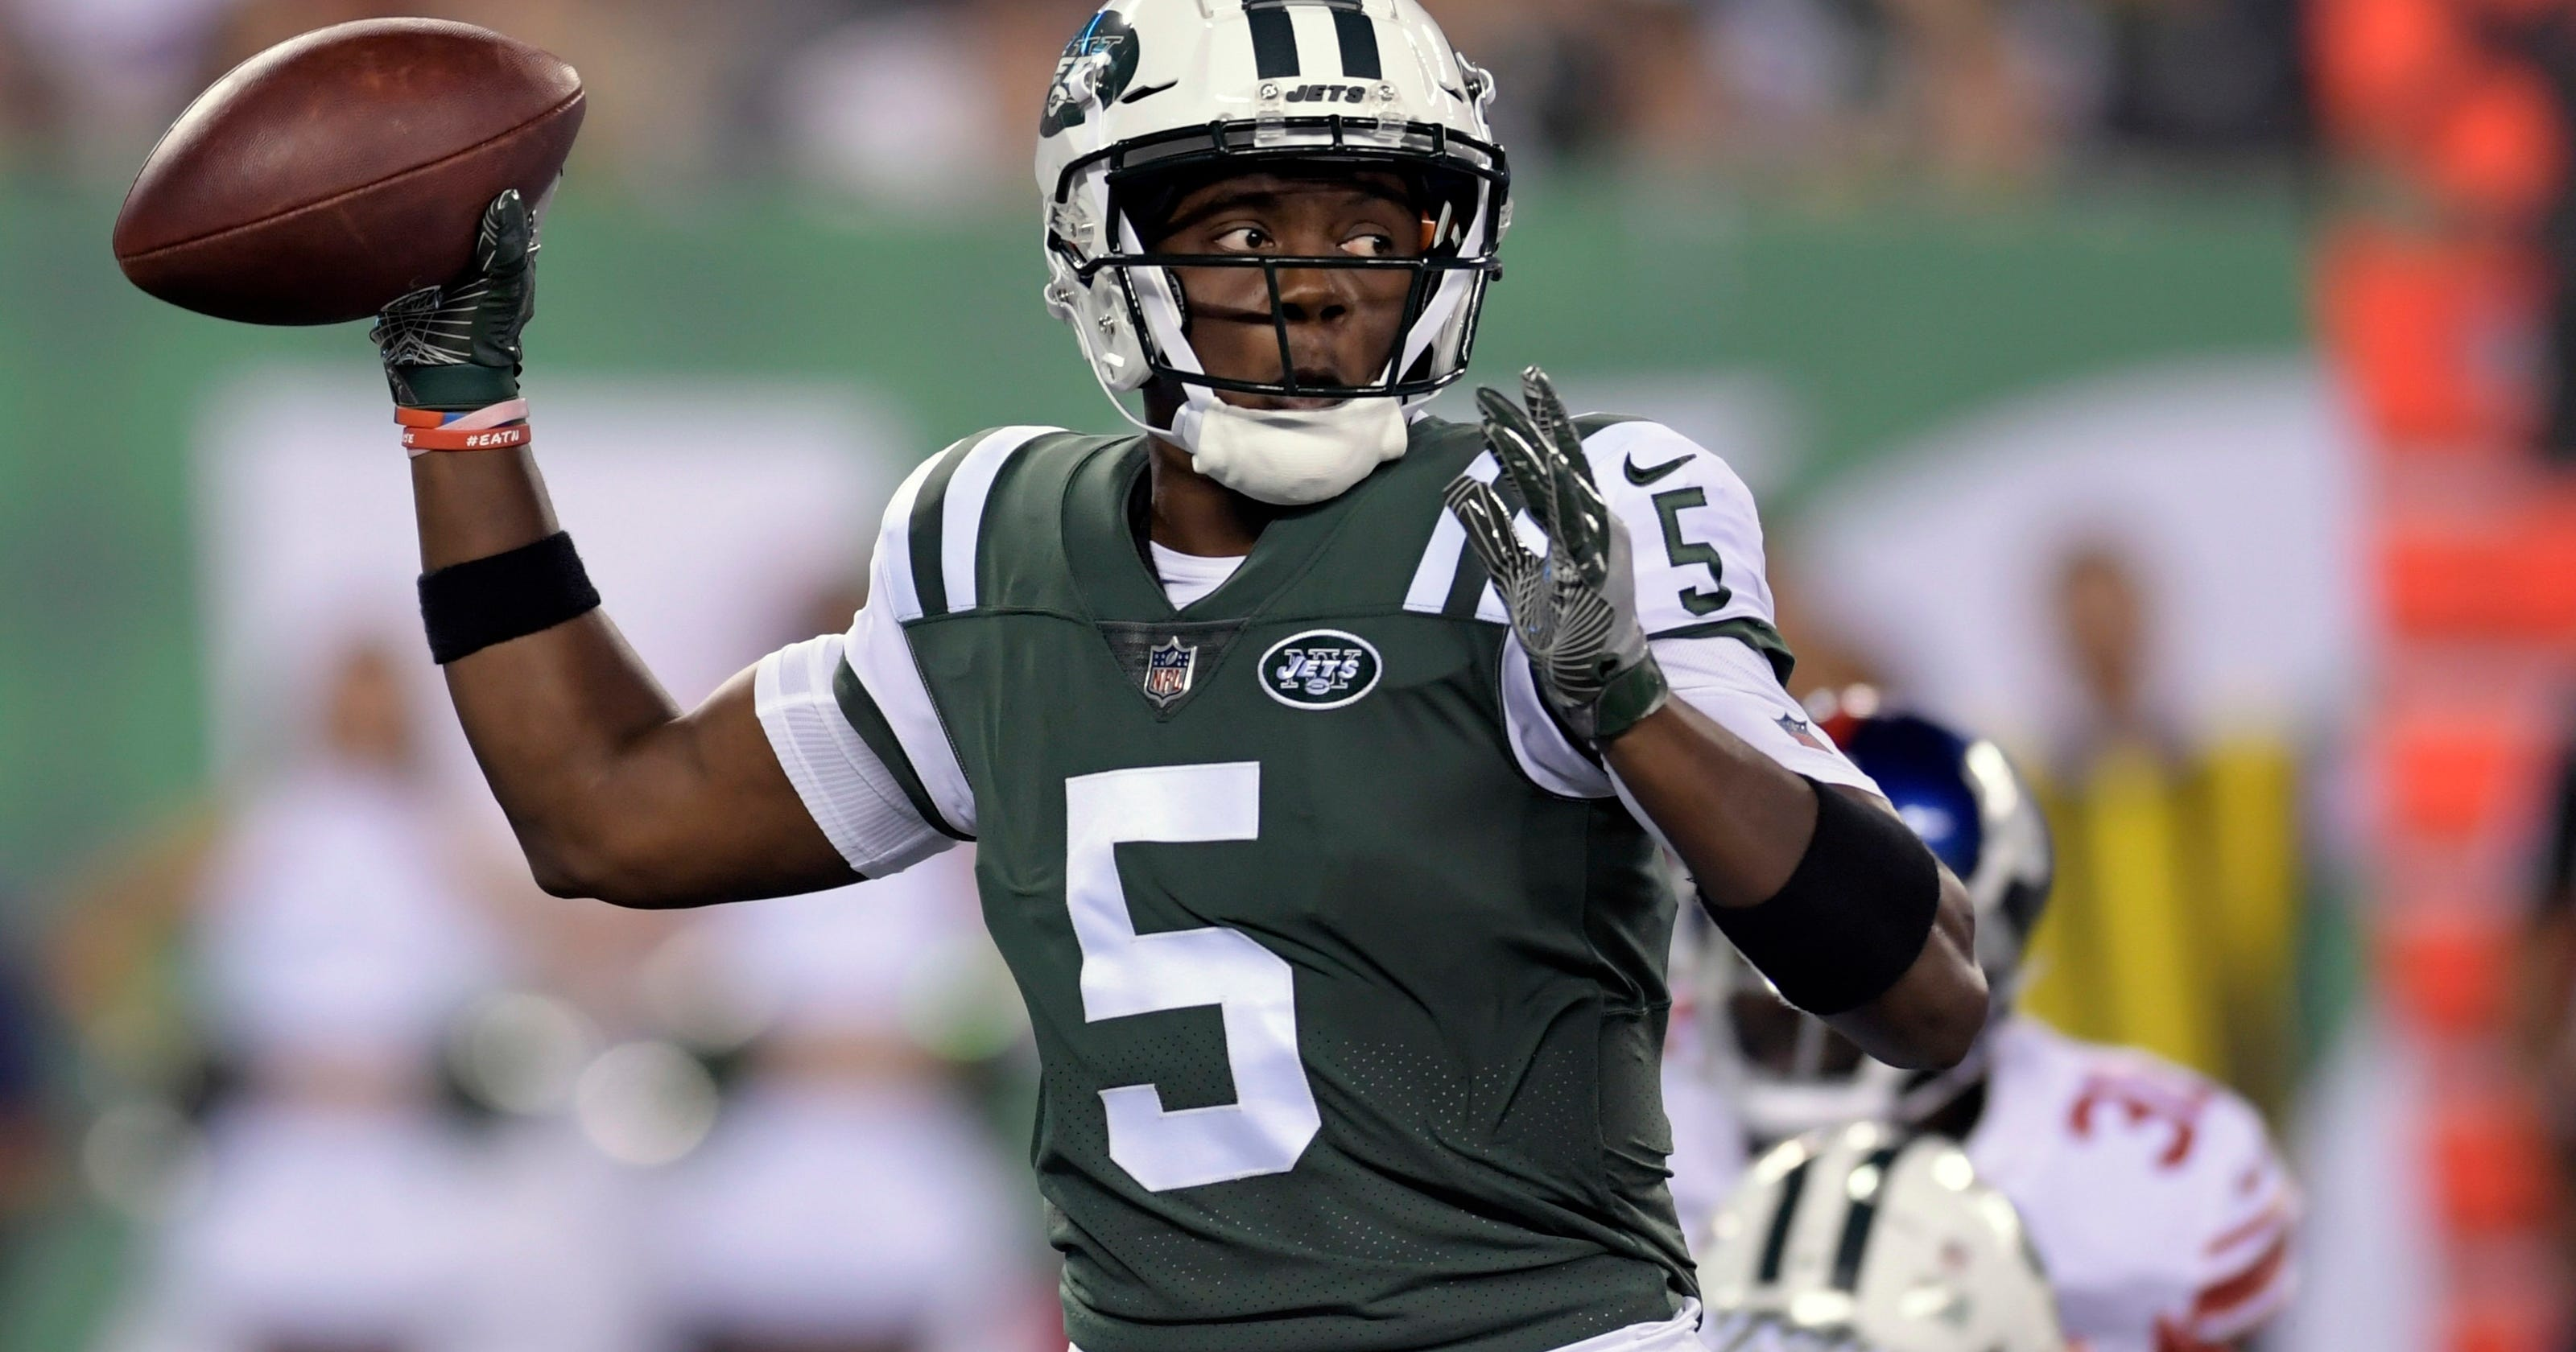 separation shoes 7627b 294cf Saints acquire QB Teddy Bridgewater from Jets